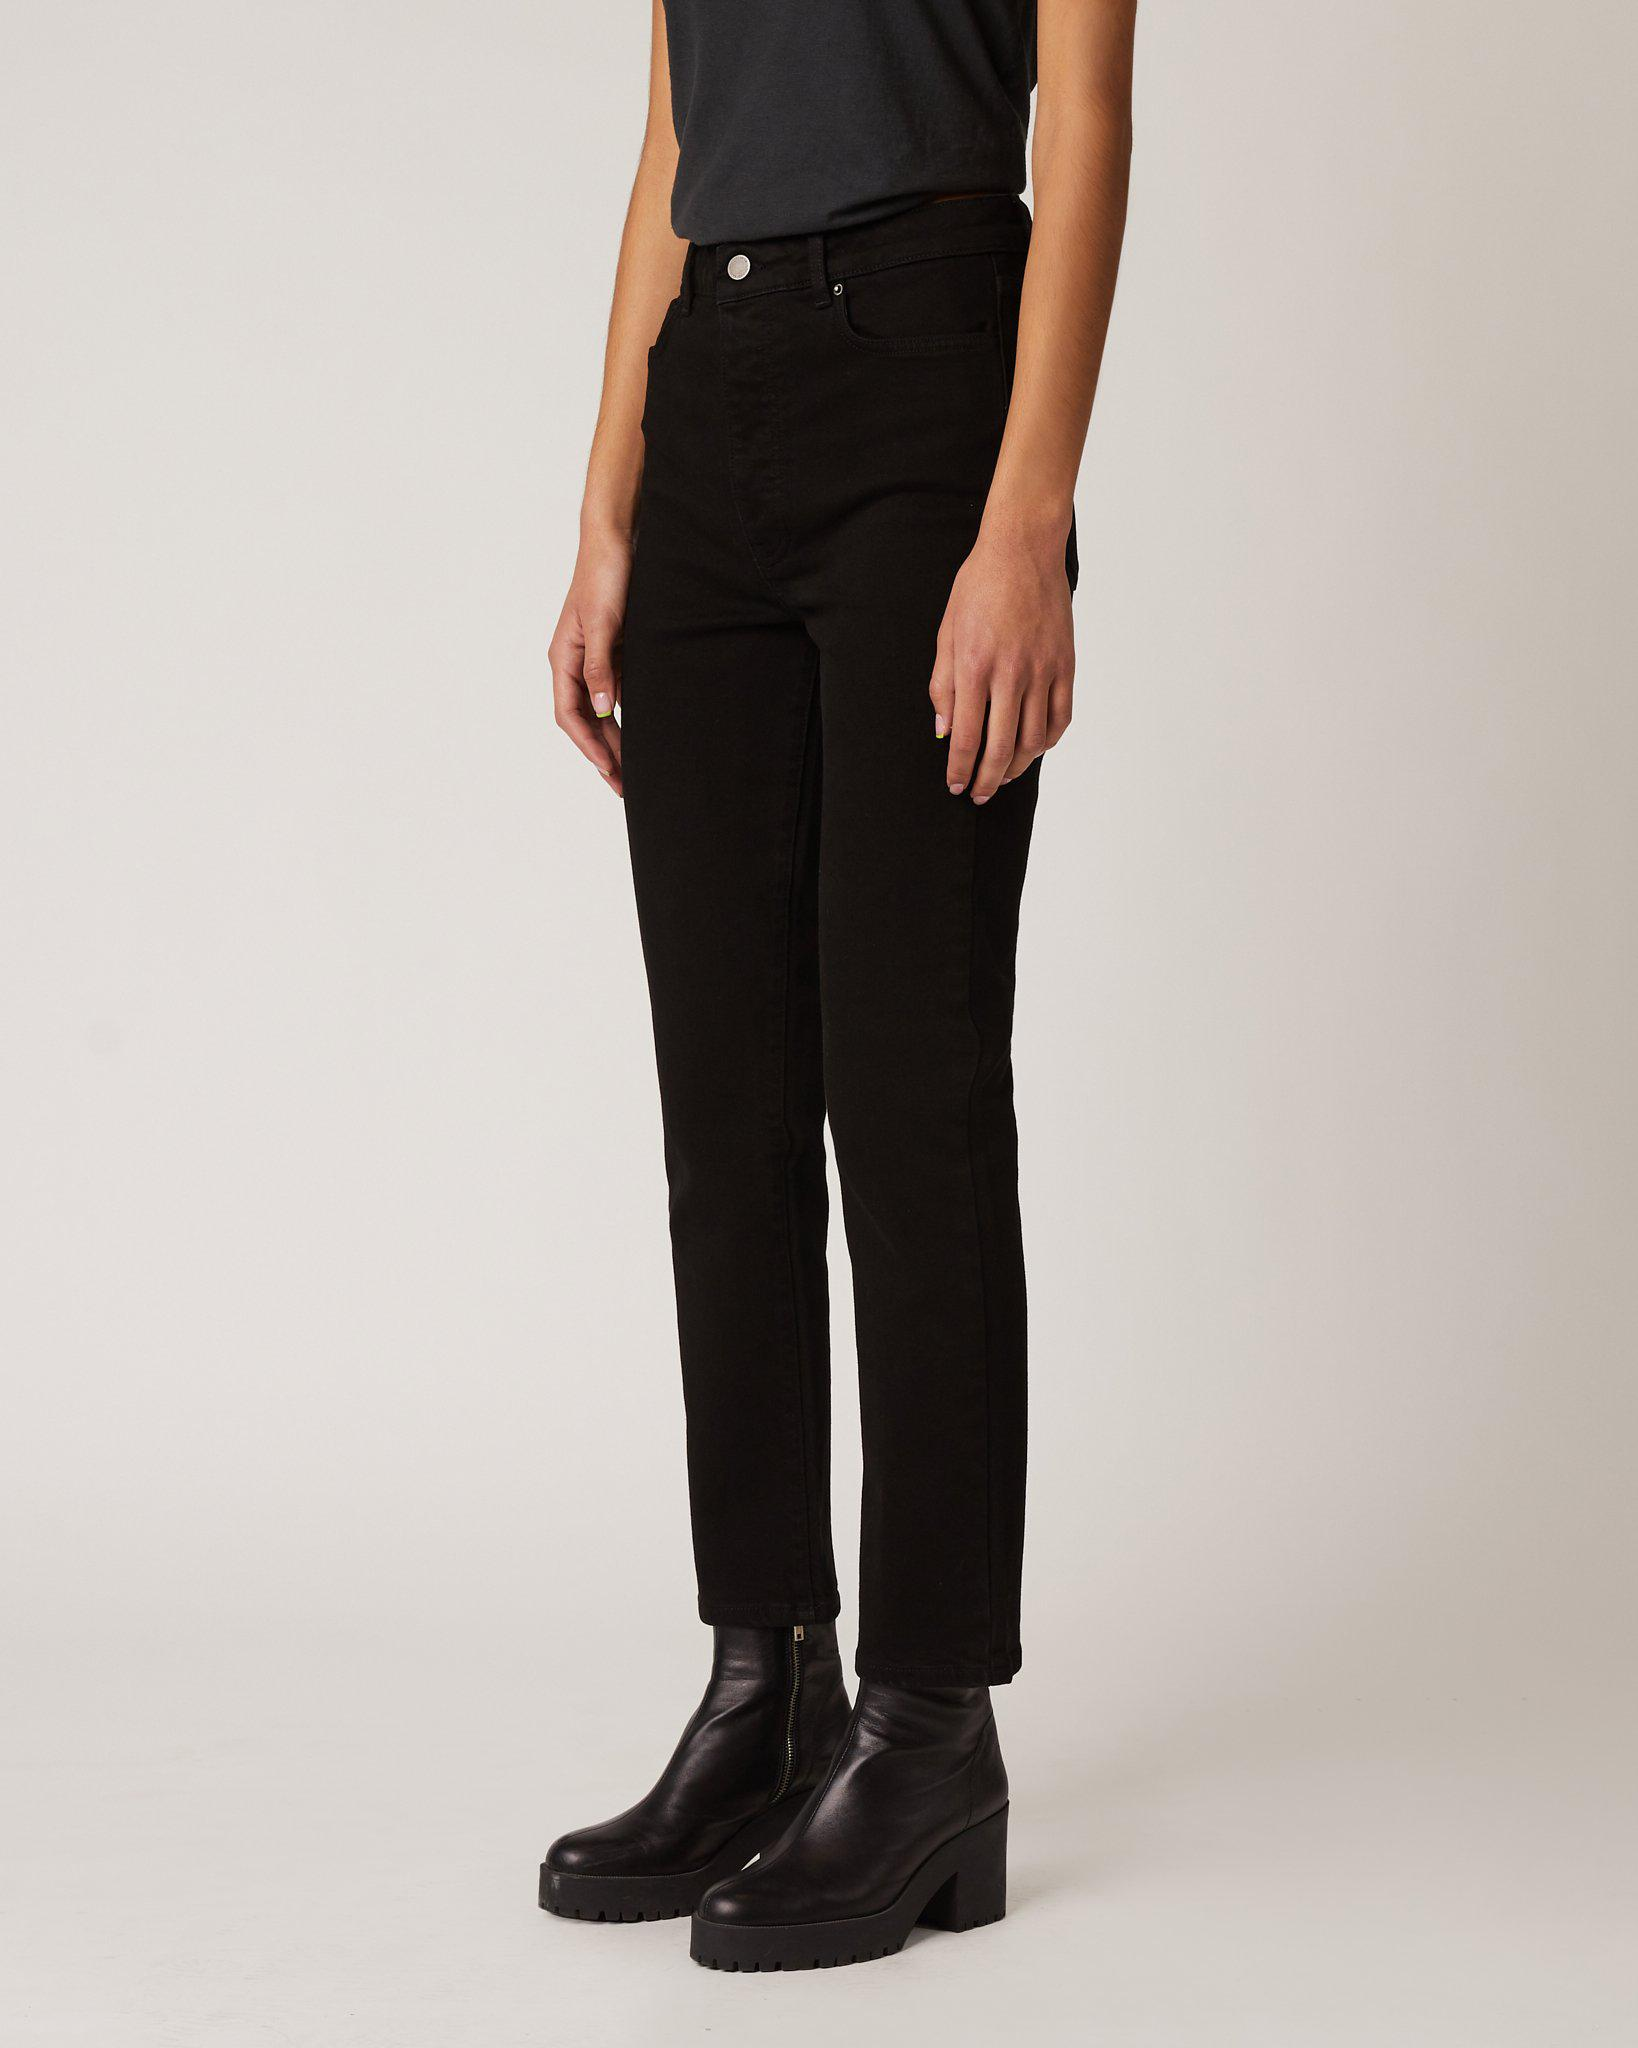 MGNTC Straight Jeans in Method 2